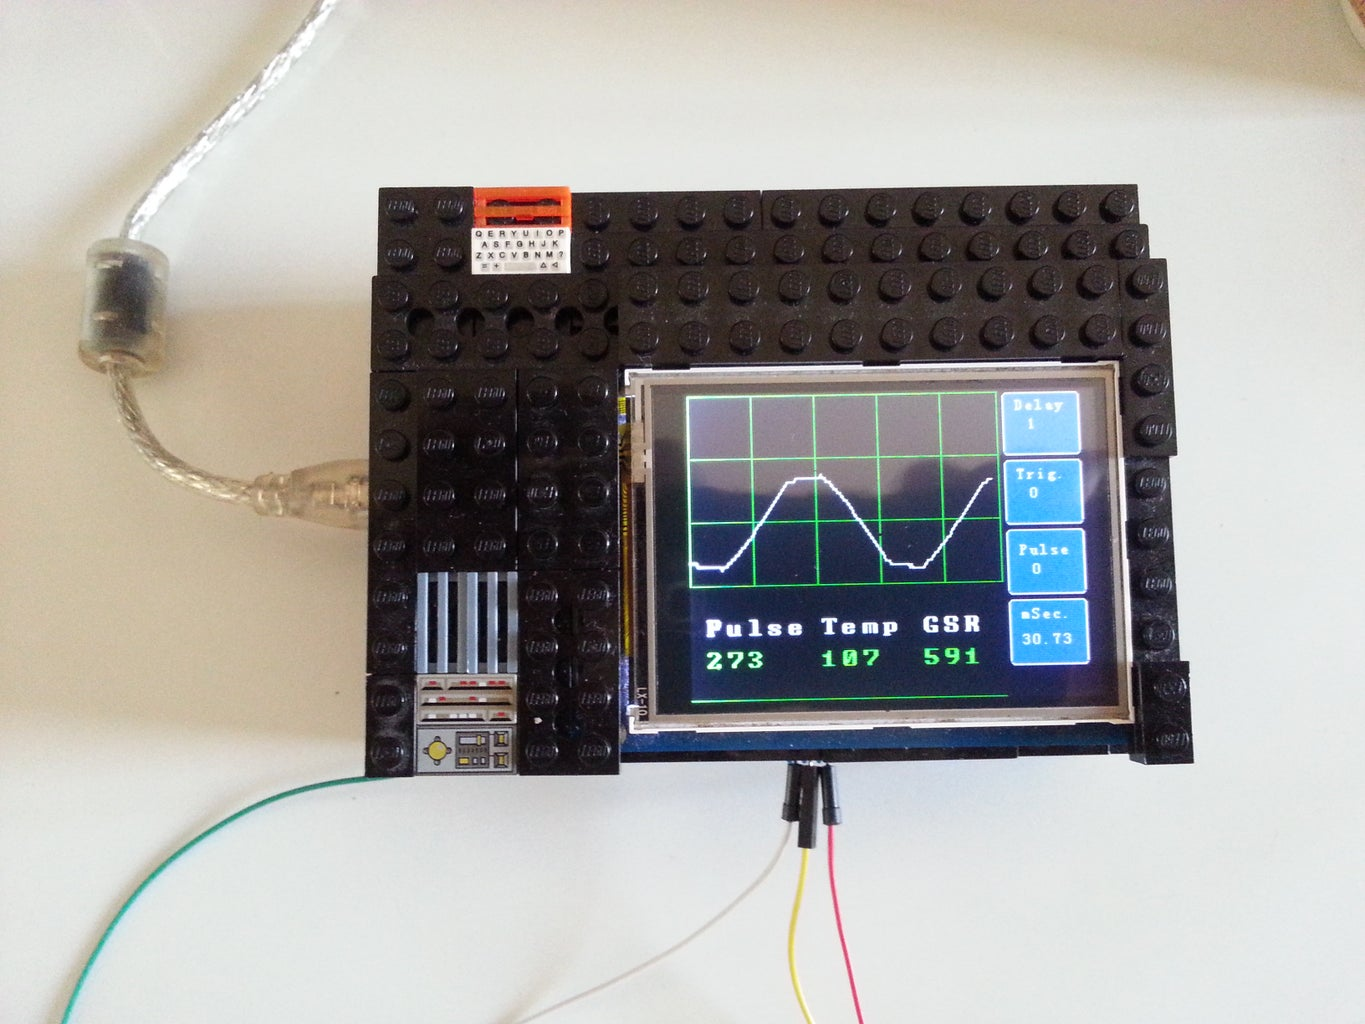 UPDATE:  Sketch to Convert Oscope to 3 Channel DVM With Graphic Display + Lego Enclosure